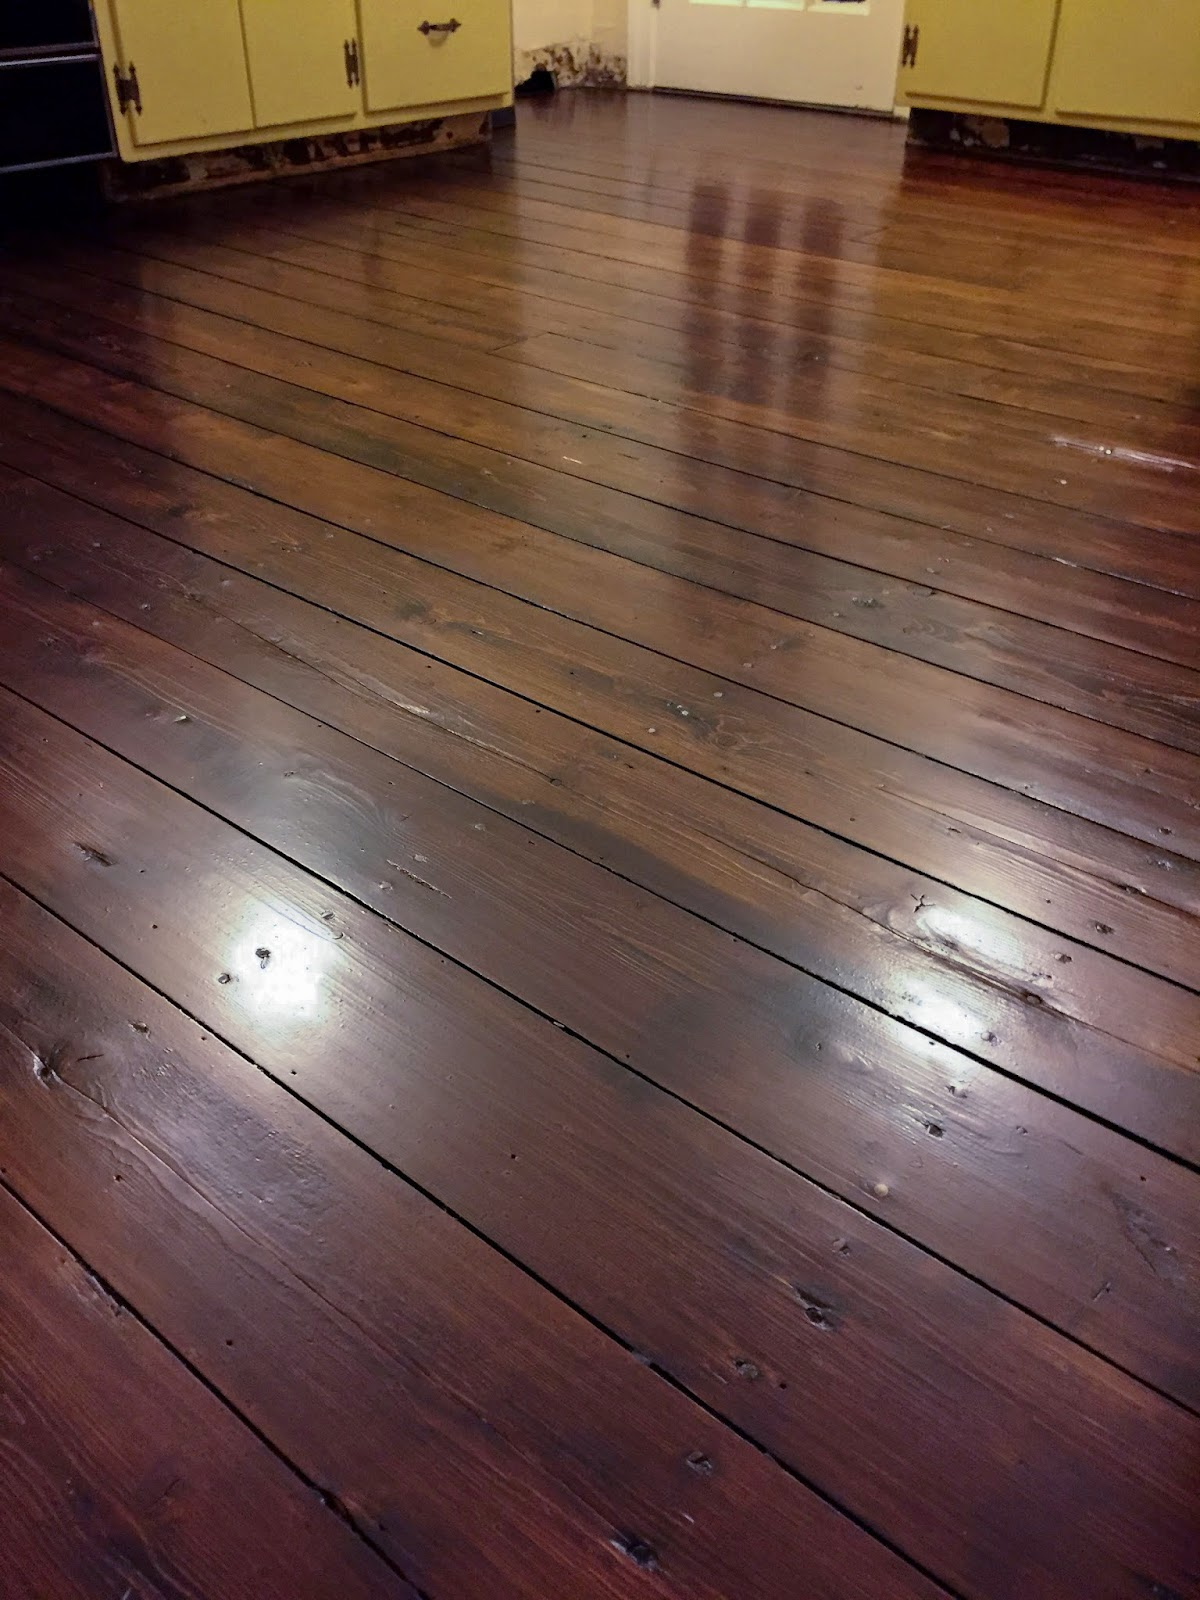 Refinishing Wood Floors - Wide Plank Pine - Restoring